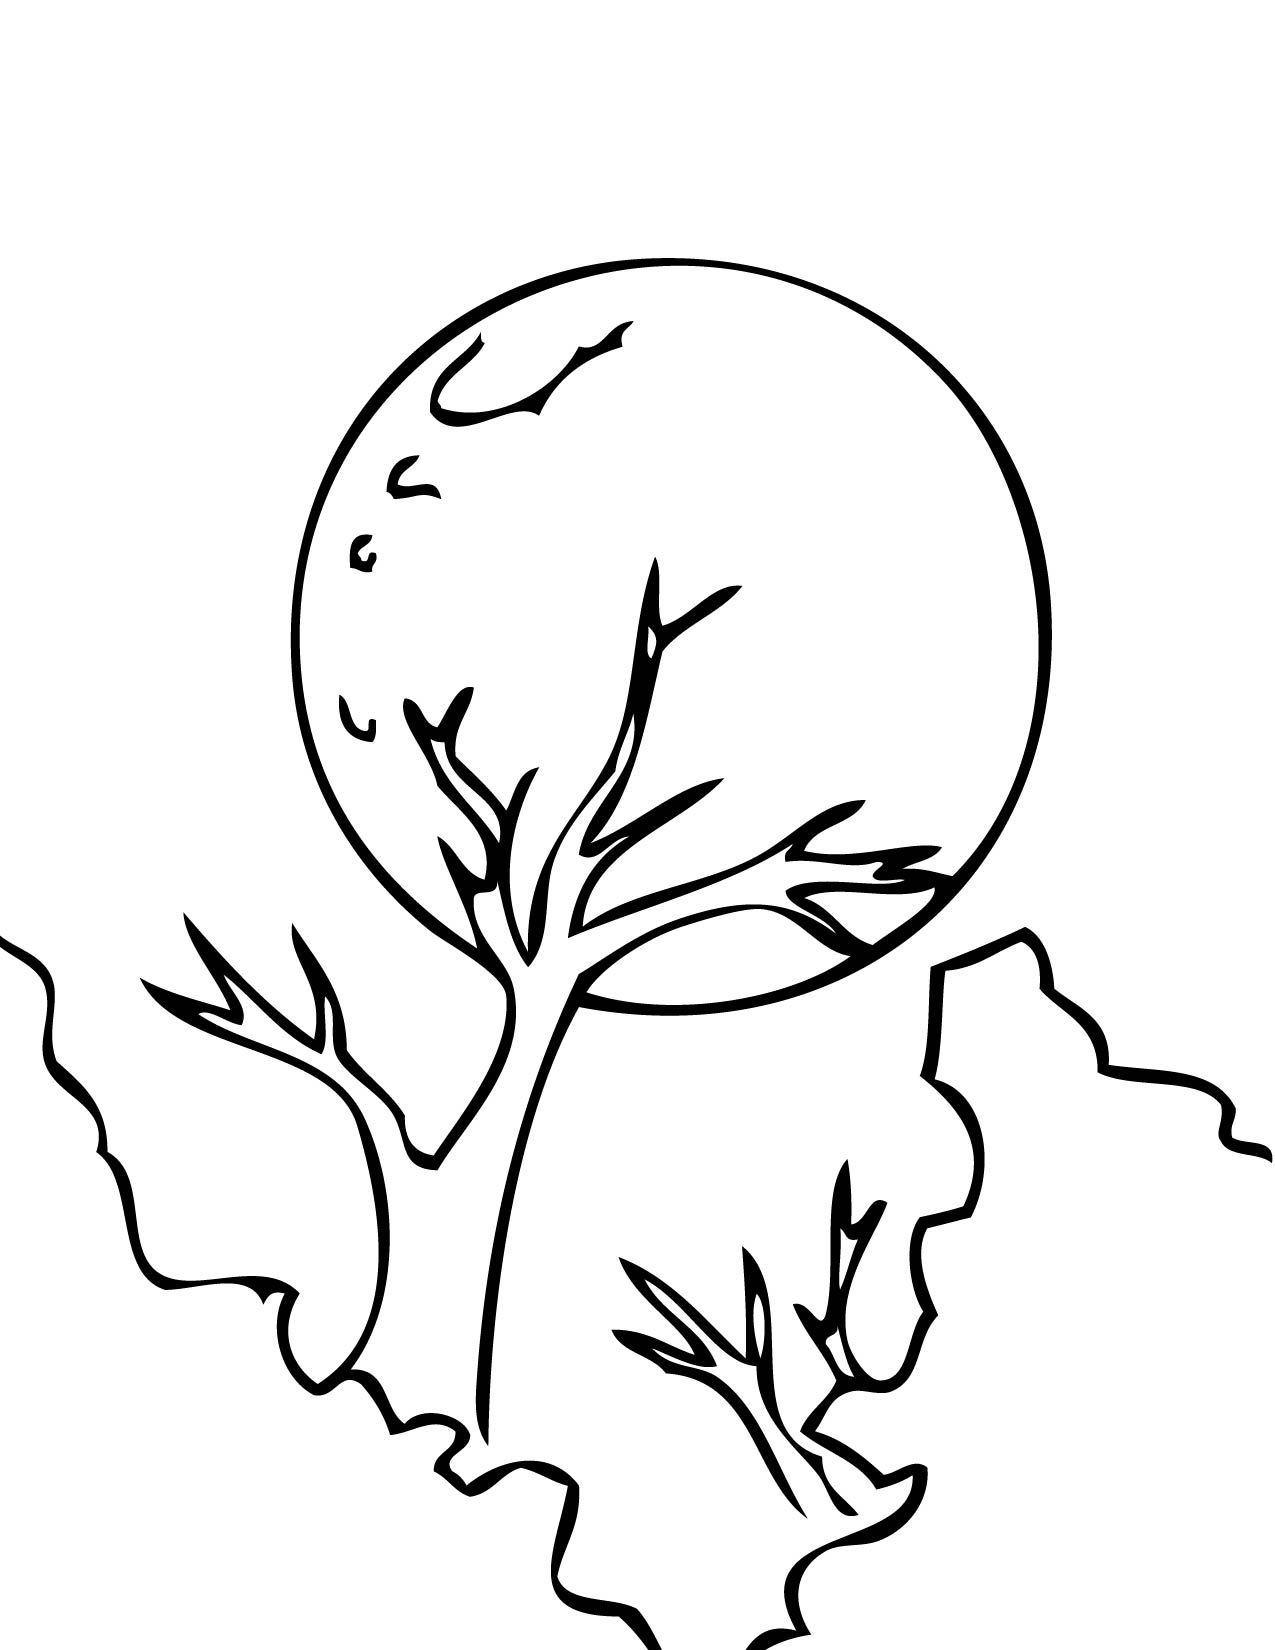 Full Moon Coloring Page Moon Coloring Pages Inspire Kids